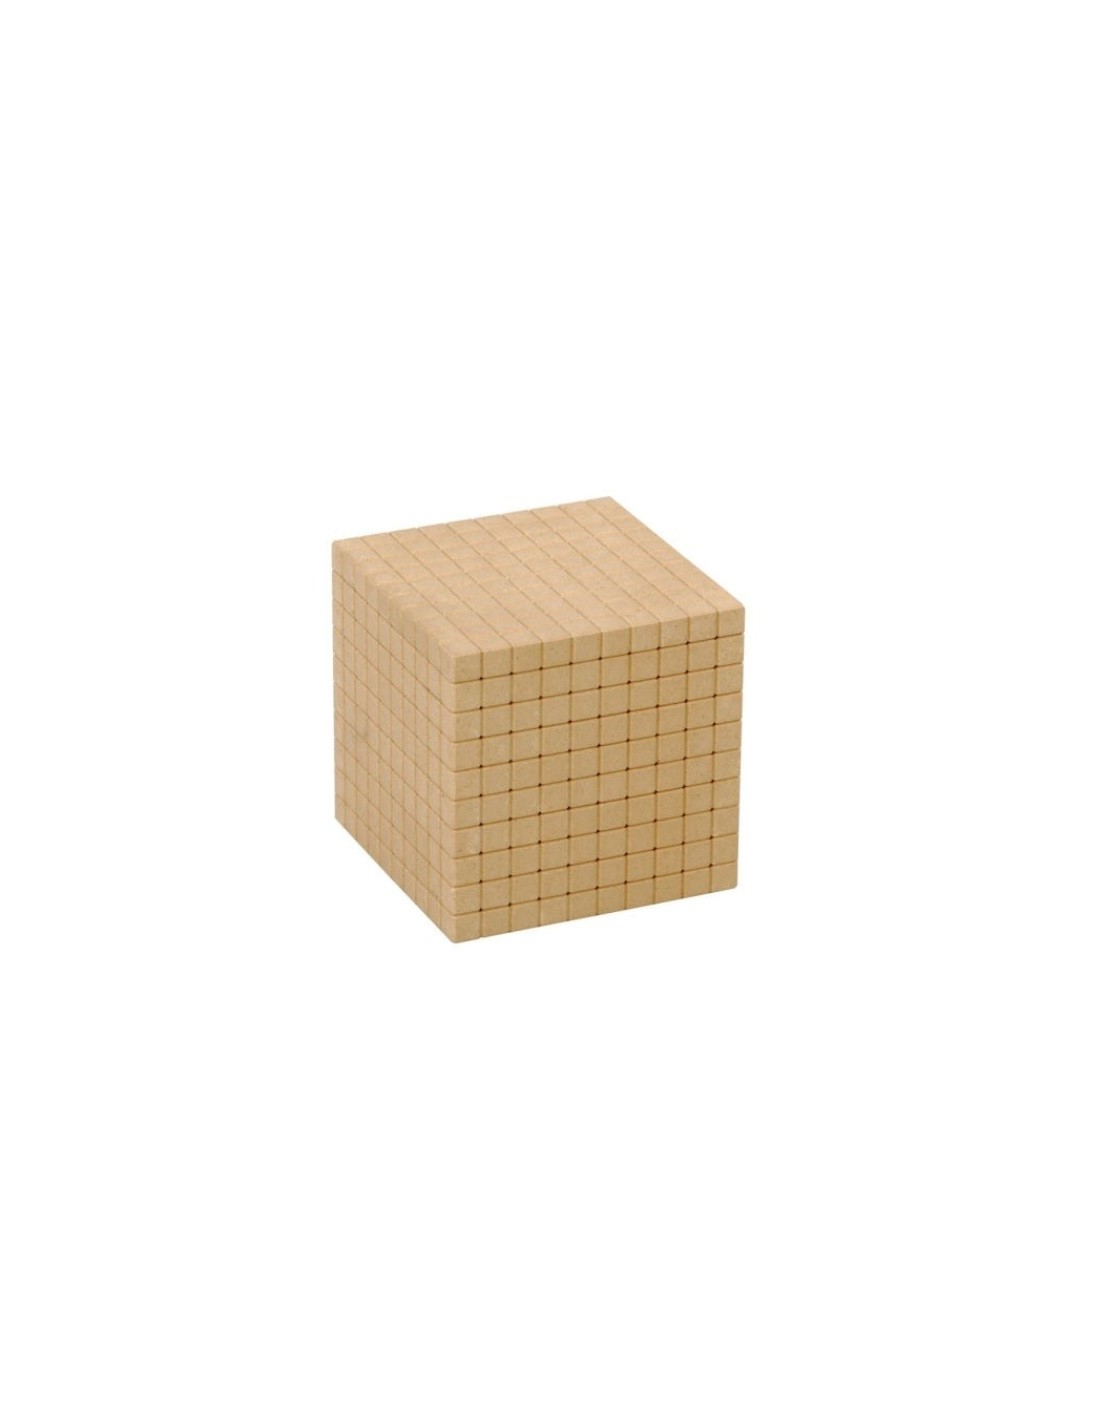 cube de 1000 base 10 en bois naturel montessori s 39 amuser autrement. Black Bedroom Furniture Sets. Home Design Ideas